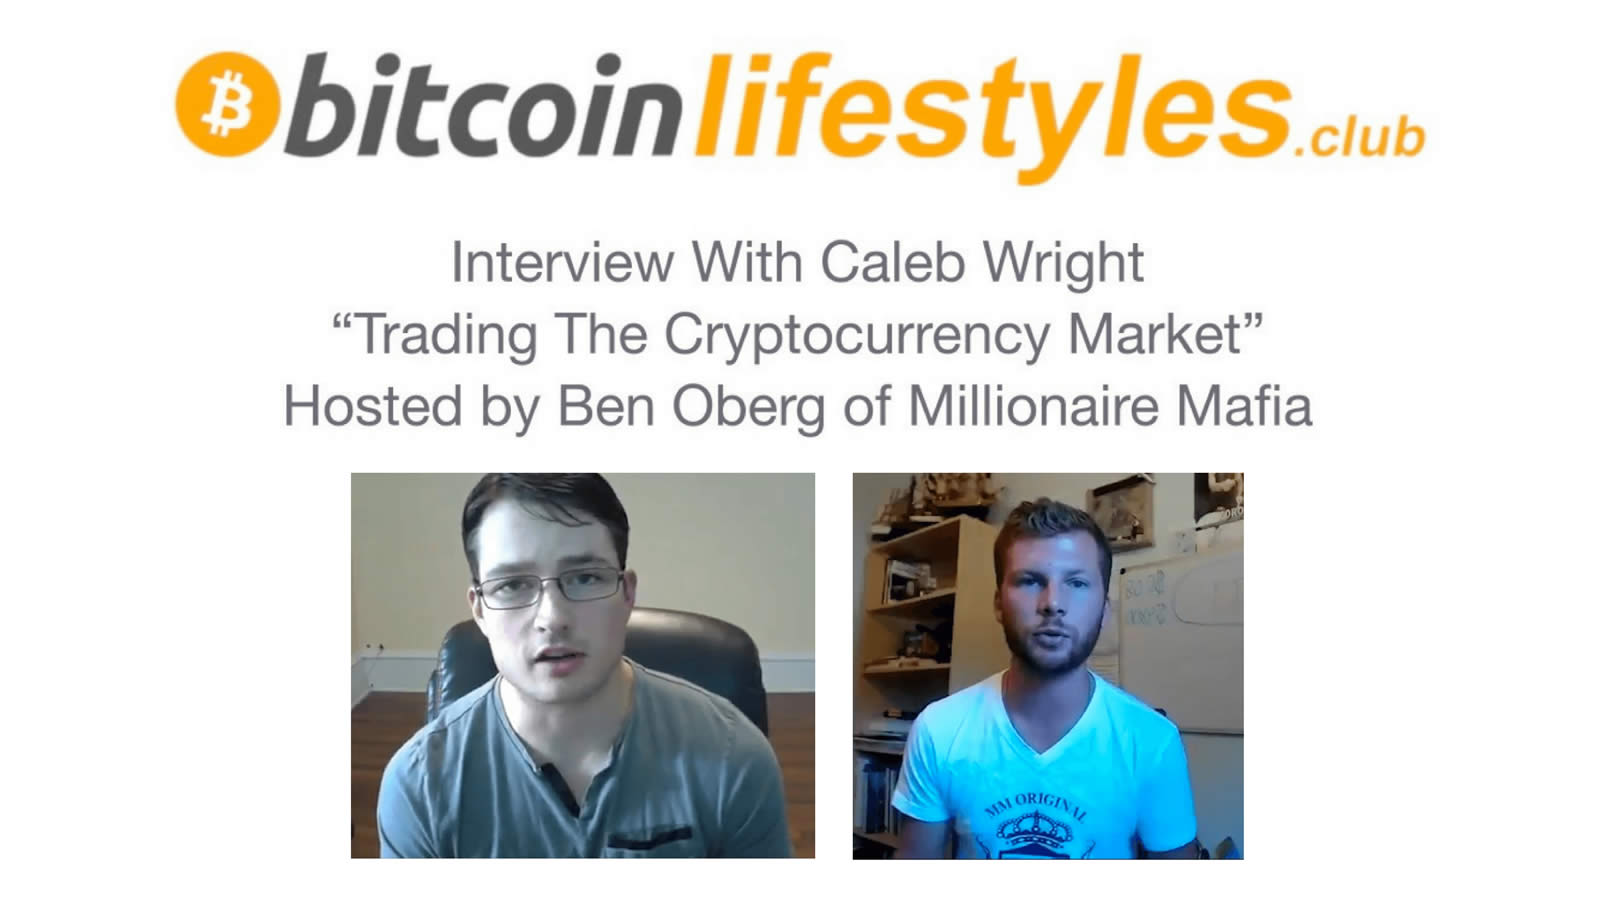 Crypto Markets Interview with Caleb Wright hosted by Ben Oberg